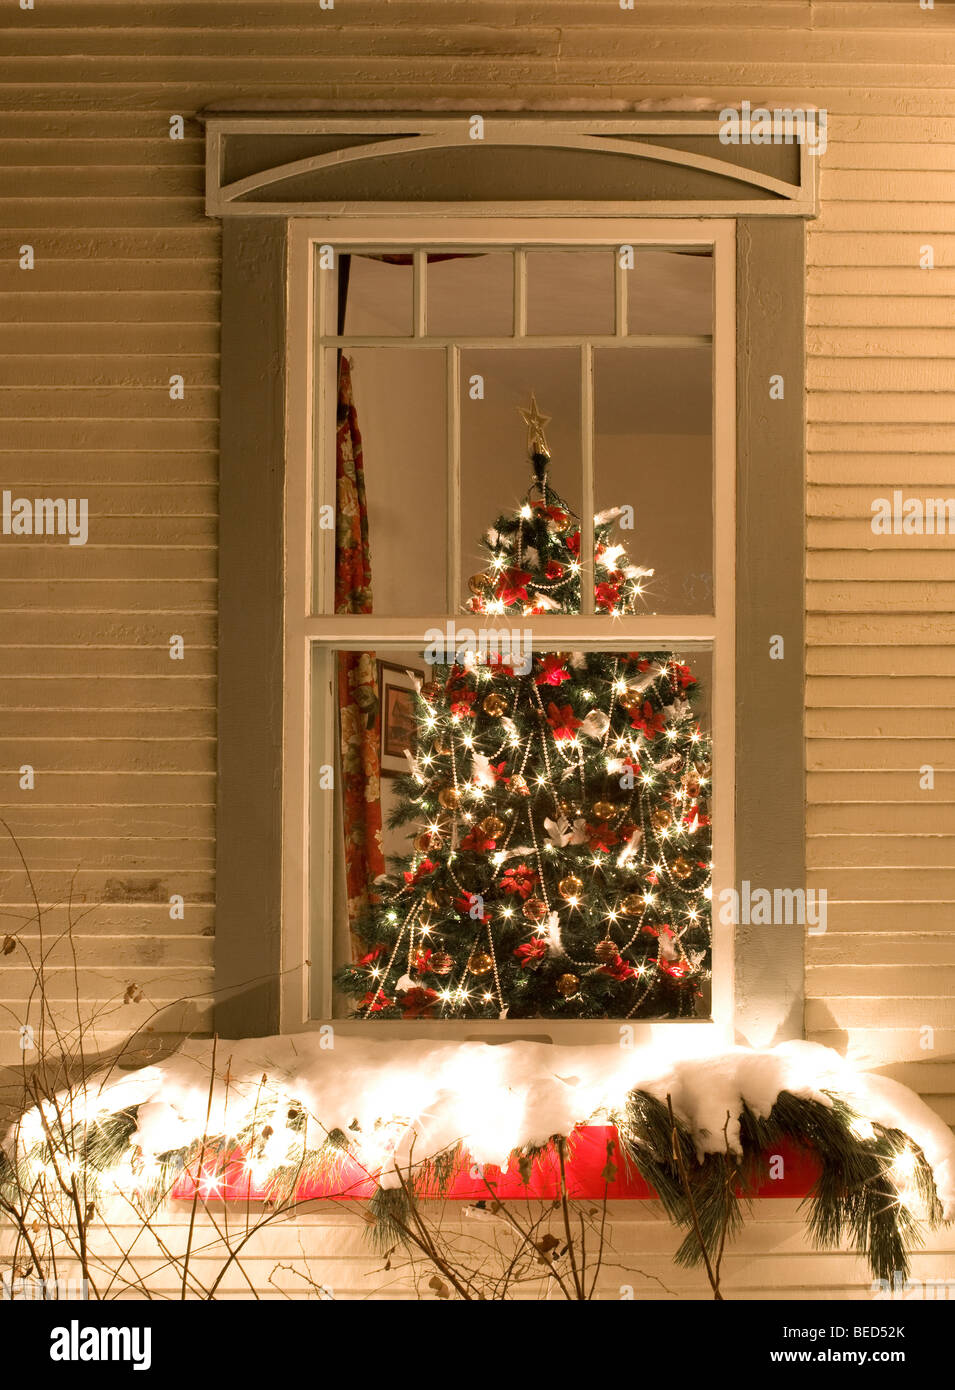 christmas tree in window stock photo 26104923 alamy. Black Bedroom Furniture Sets. Home Design Ideas